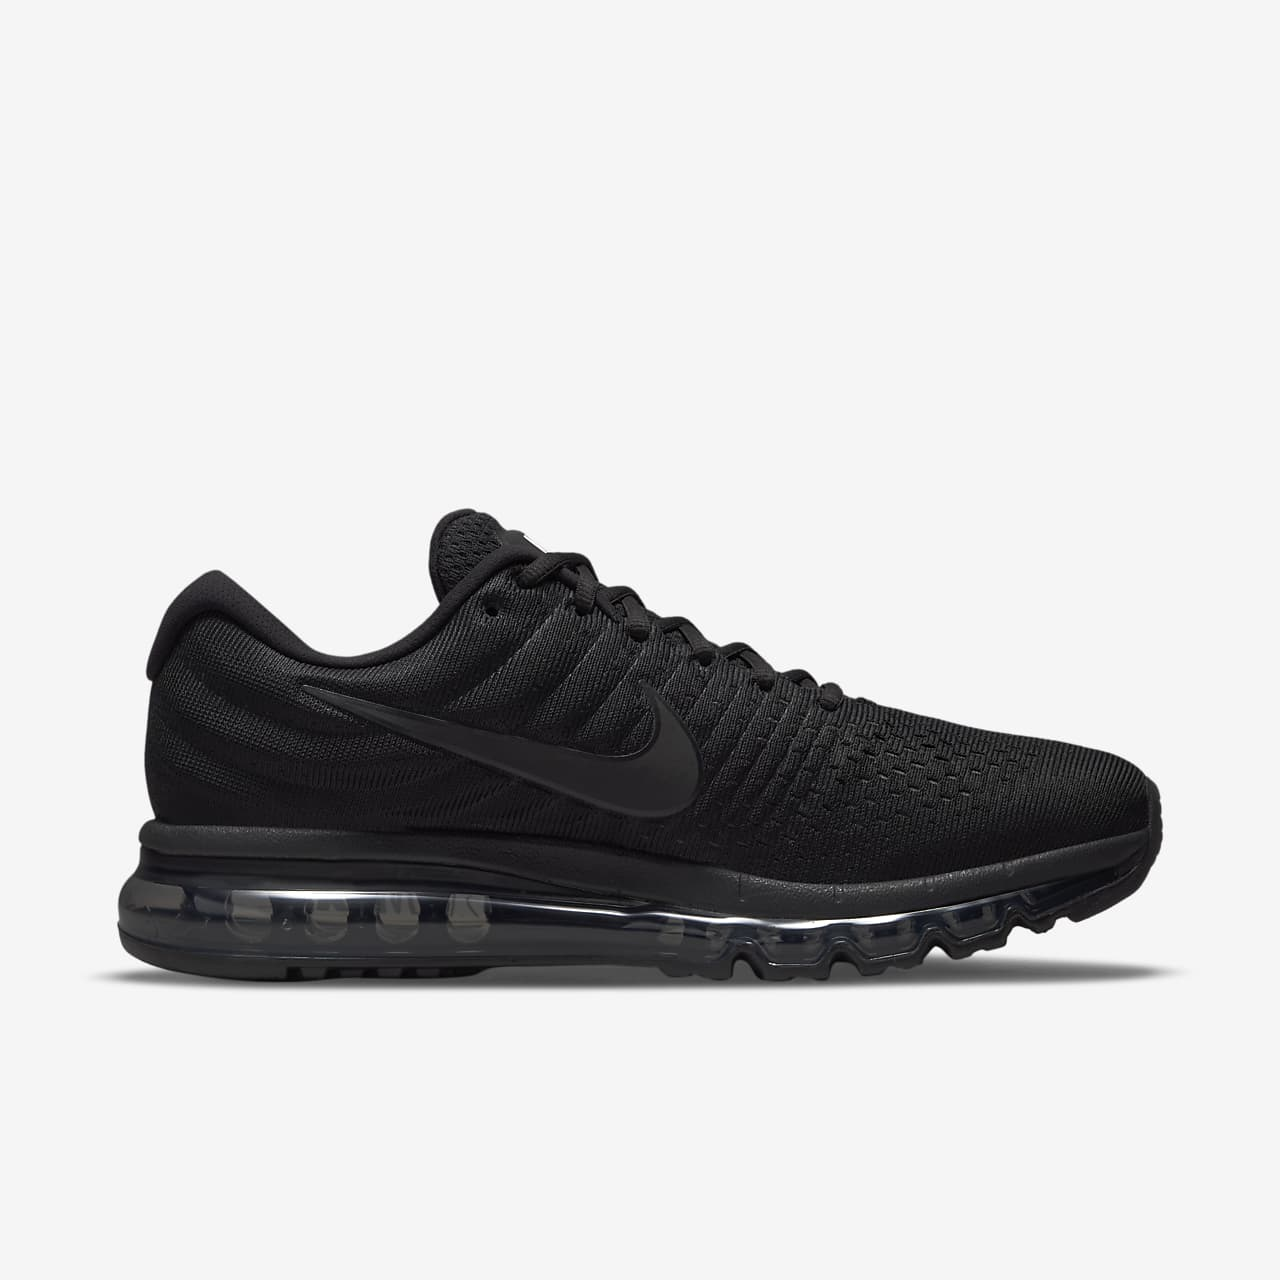 Nike Black Football Shoes